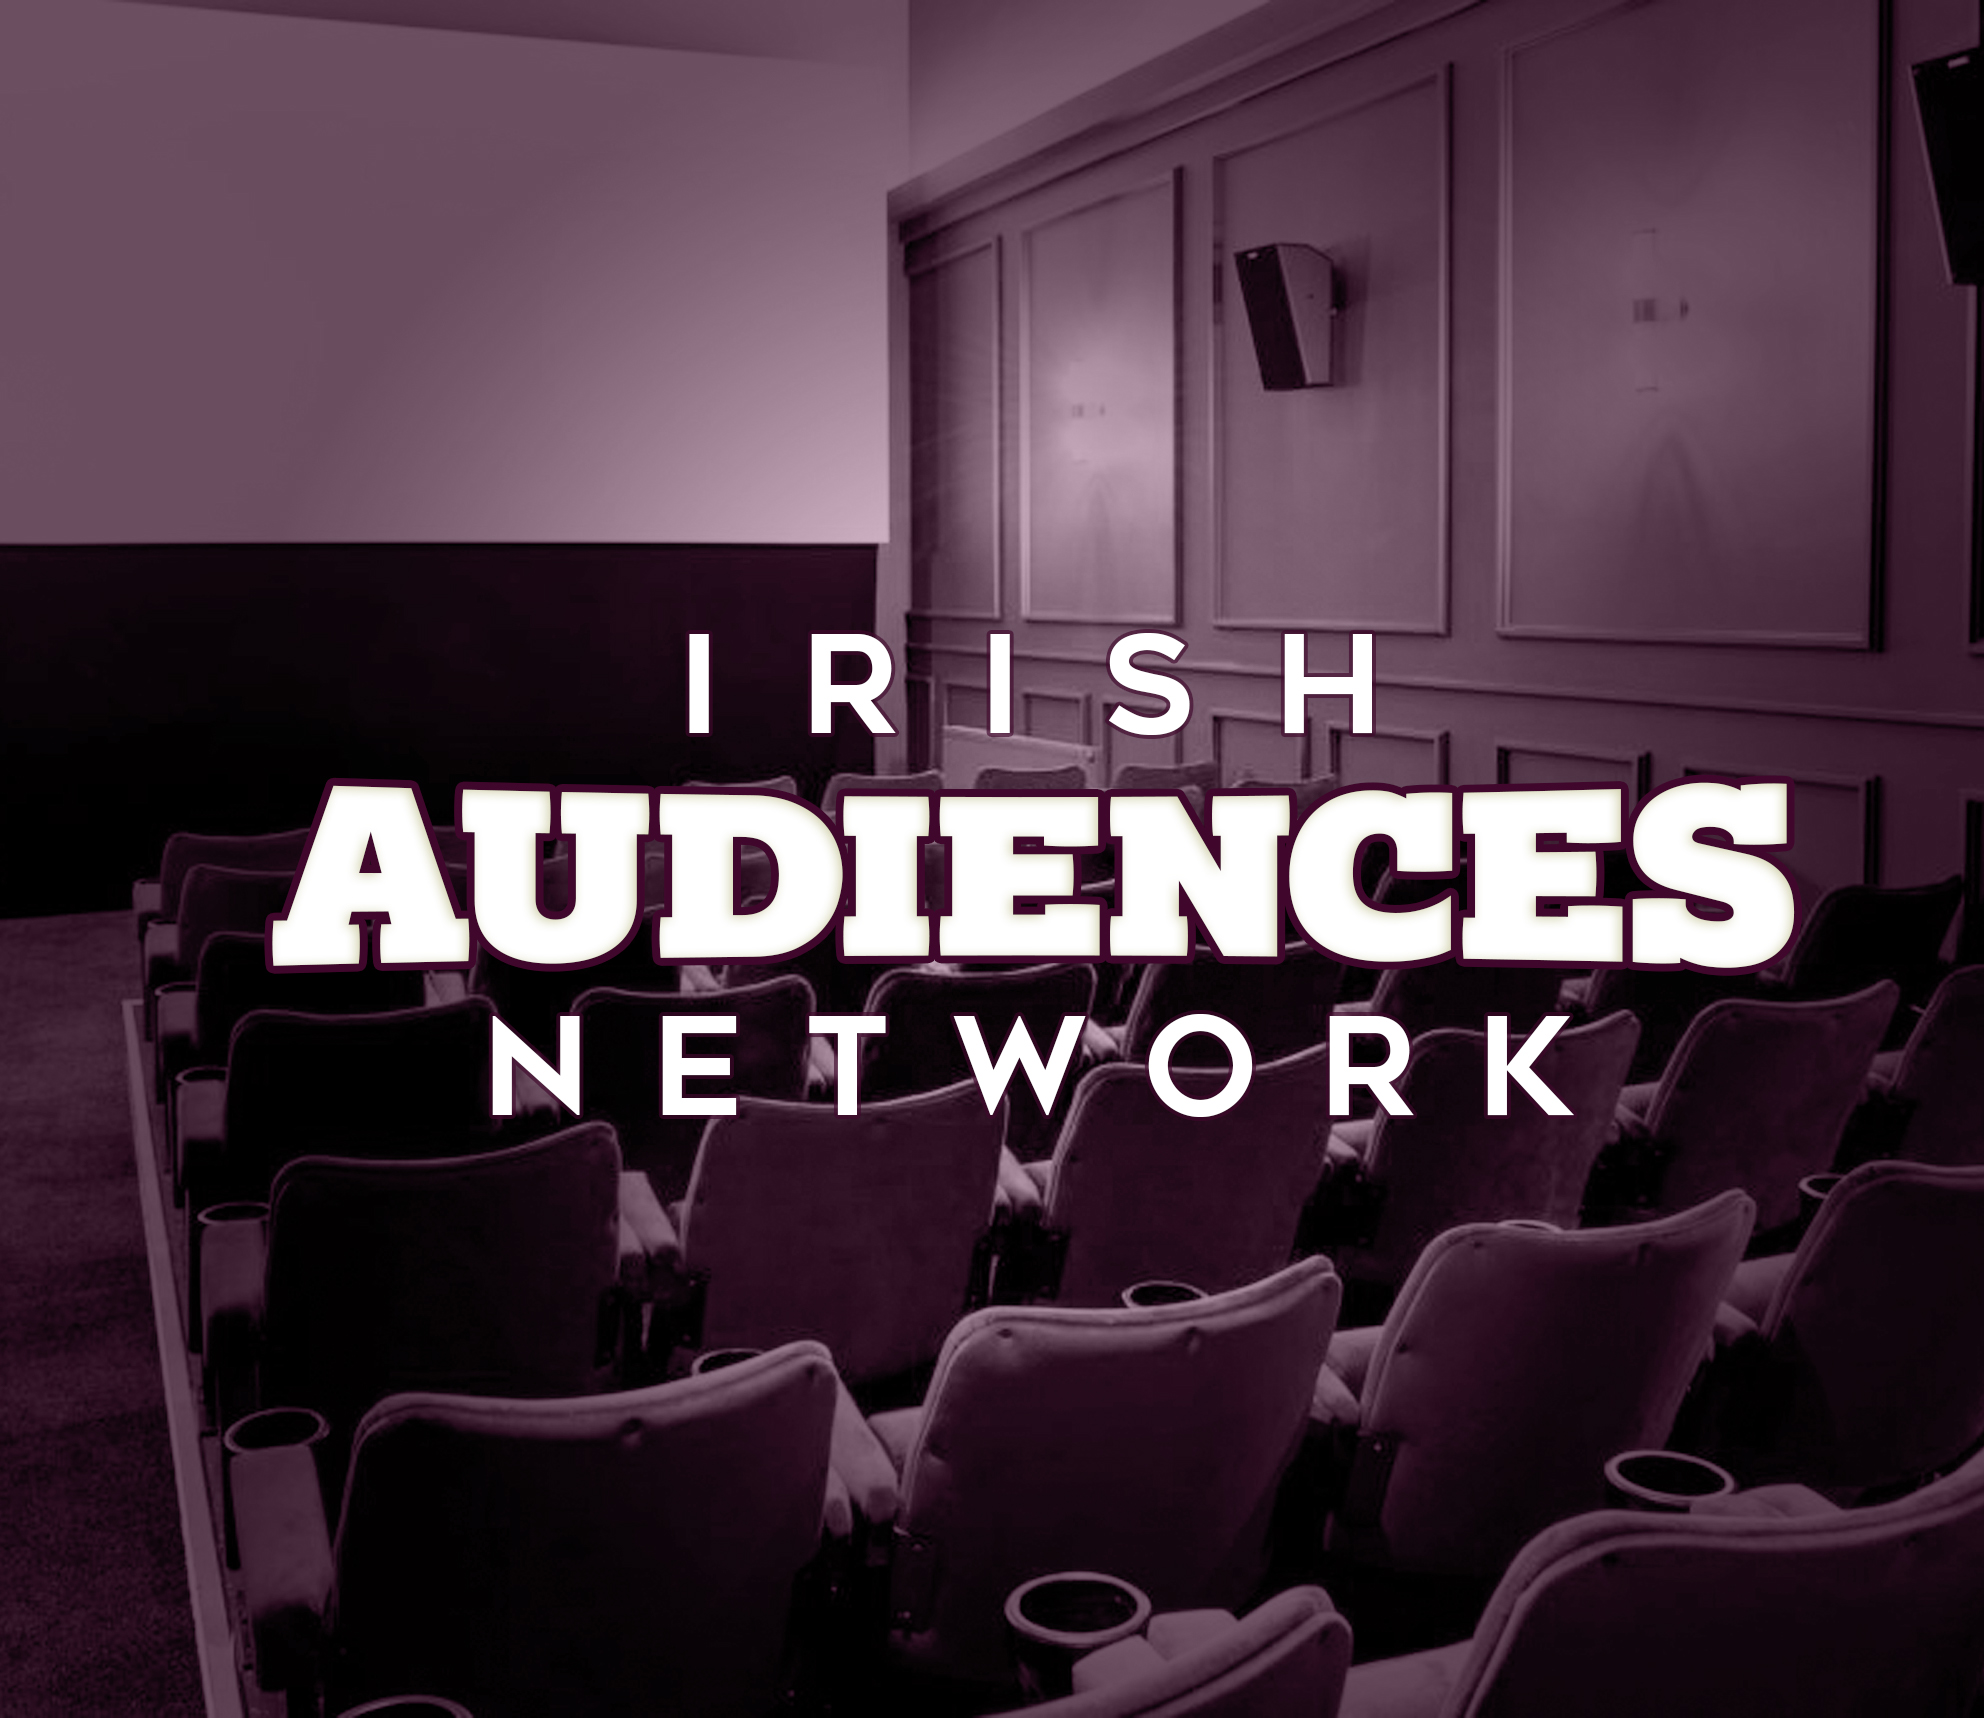 Call for papers: 2nd Symposium of the Irish Audiences Network. 5th April UCC